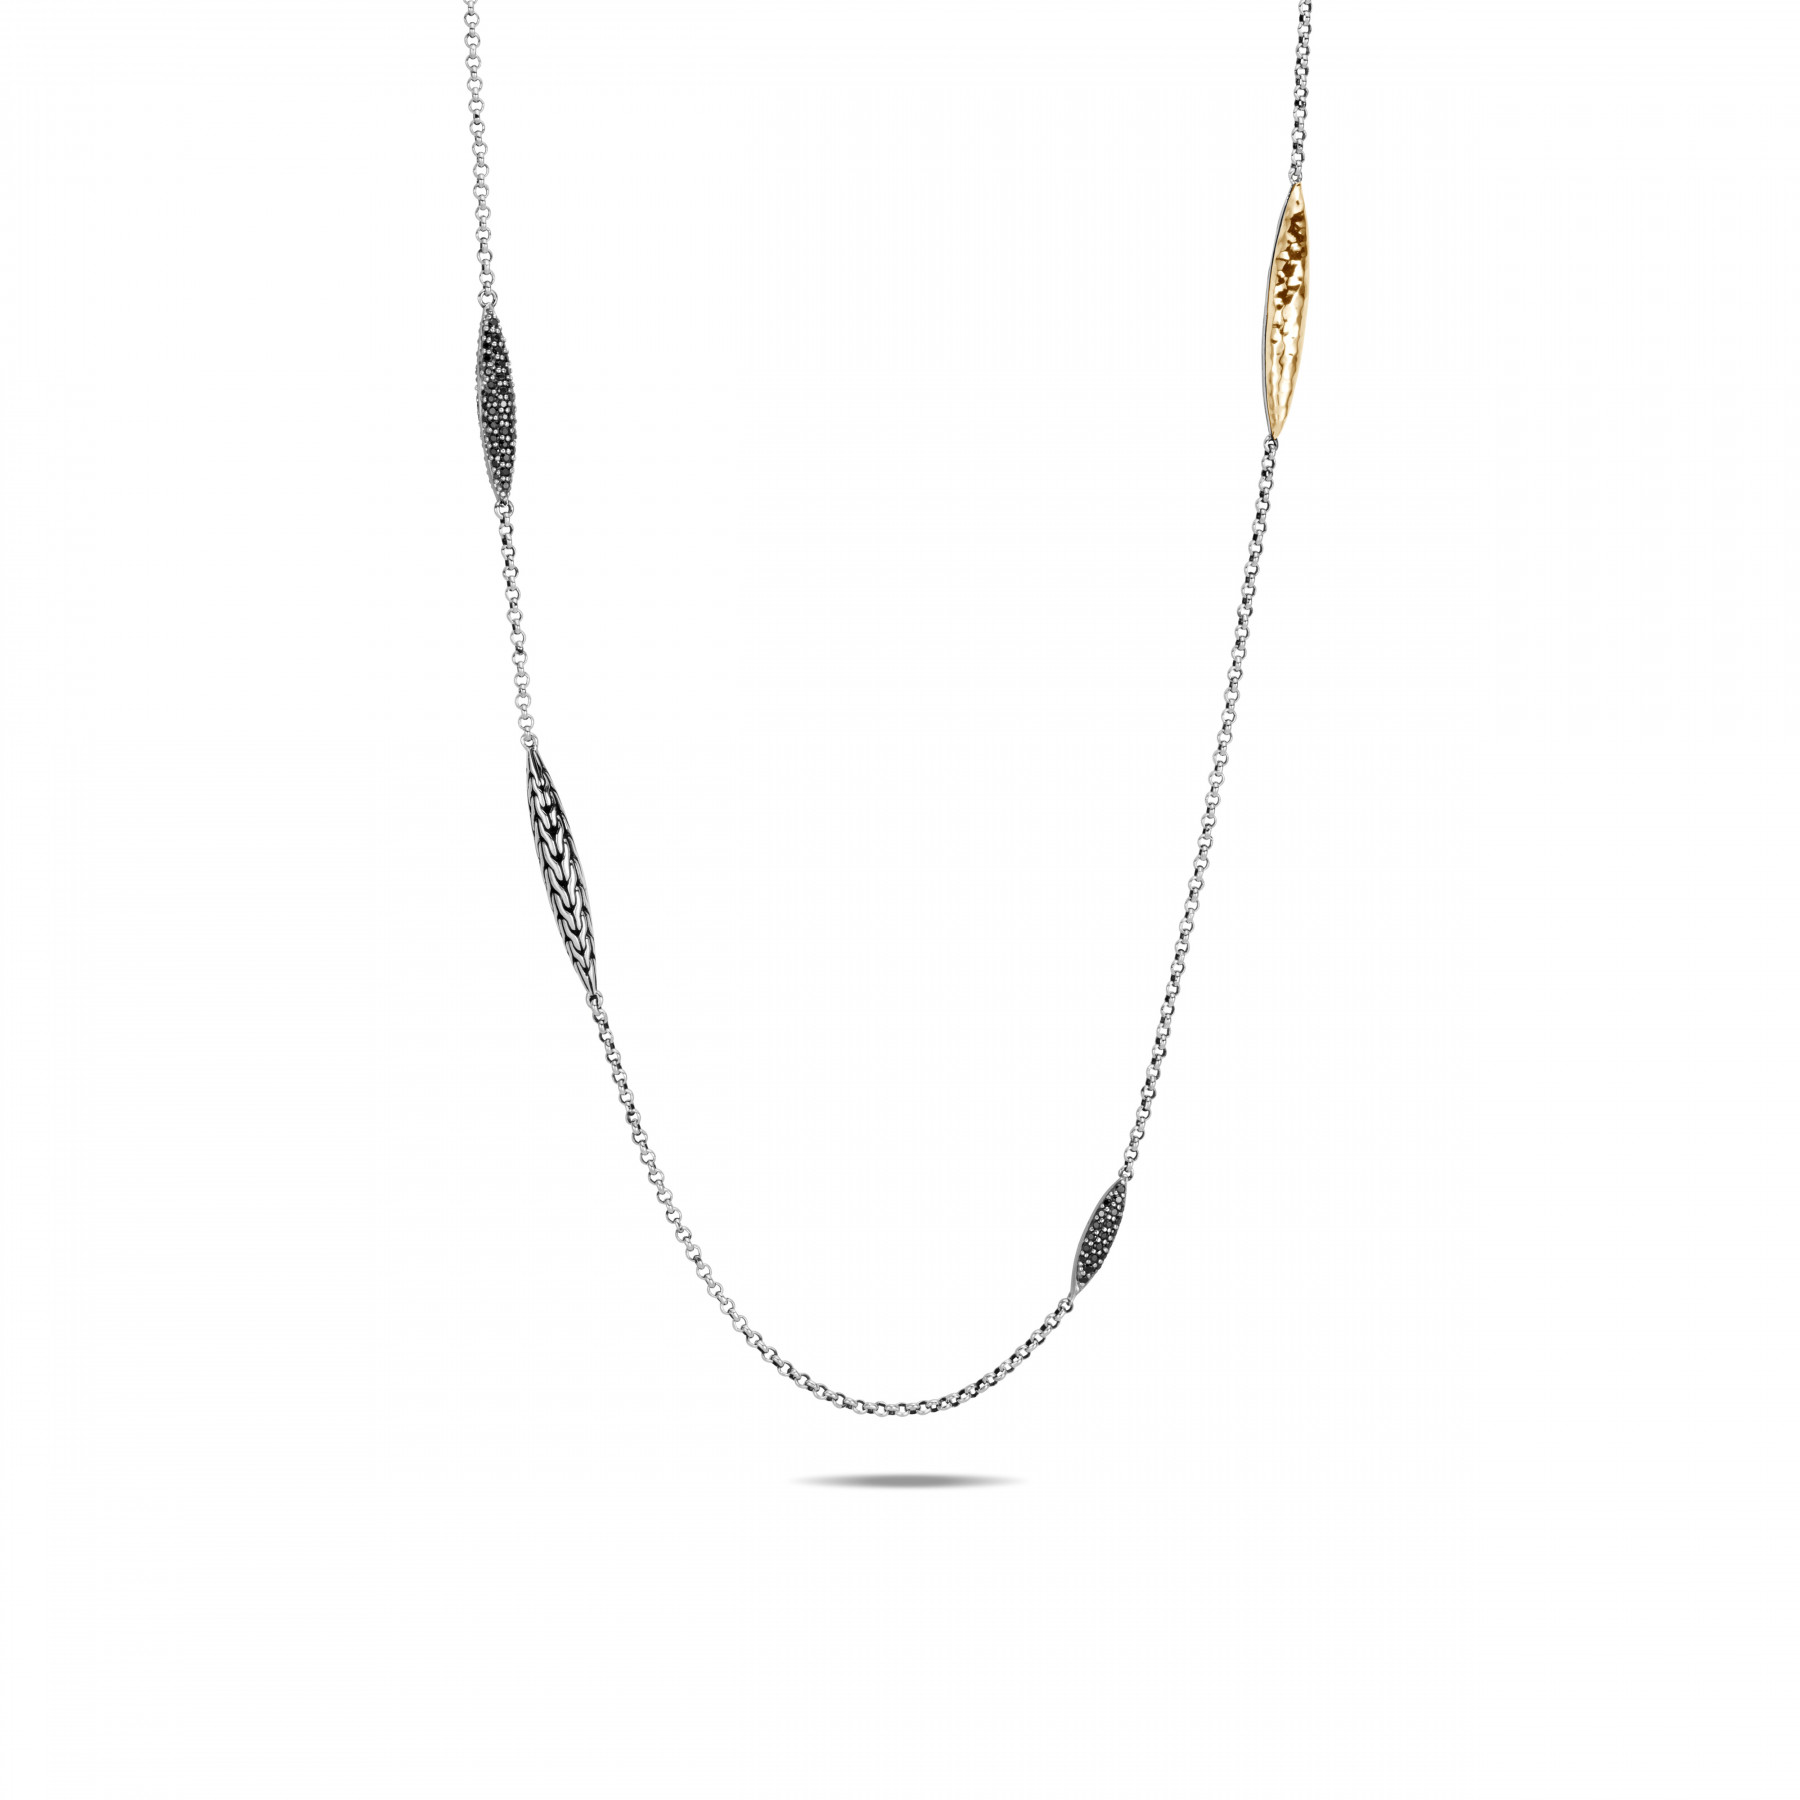 John Hardy Classic Chain Spear Mixed Metal Long Necklace front view